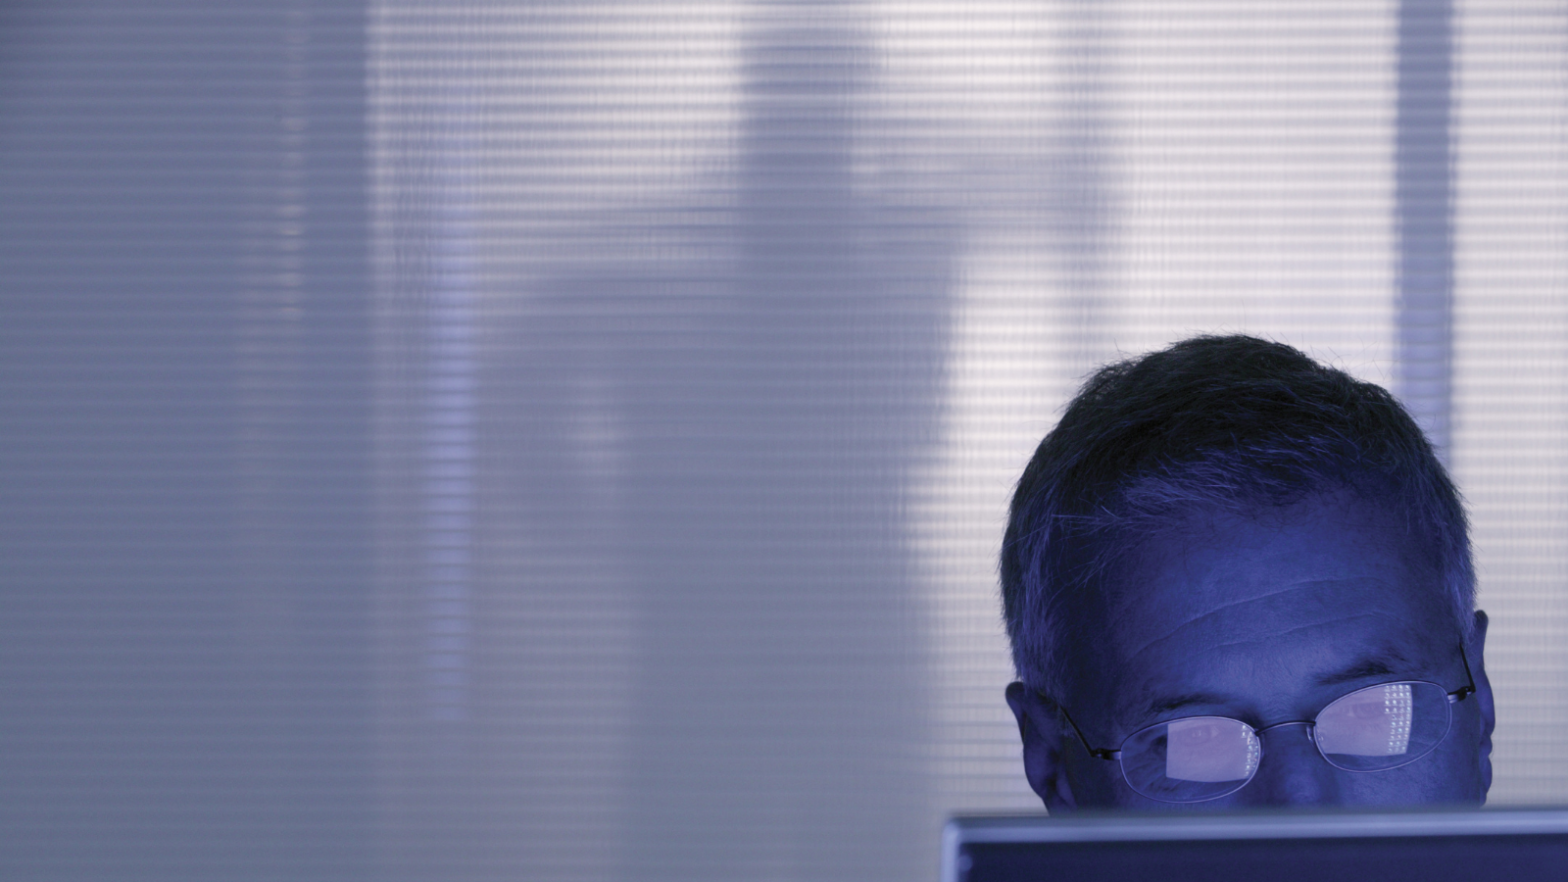 Stalking in the Digital Age: How to Prevent Victimization